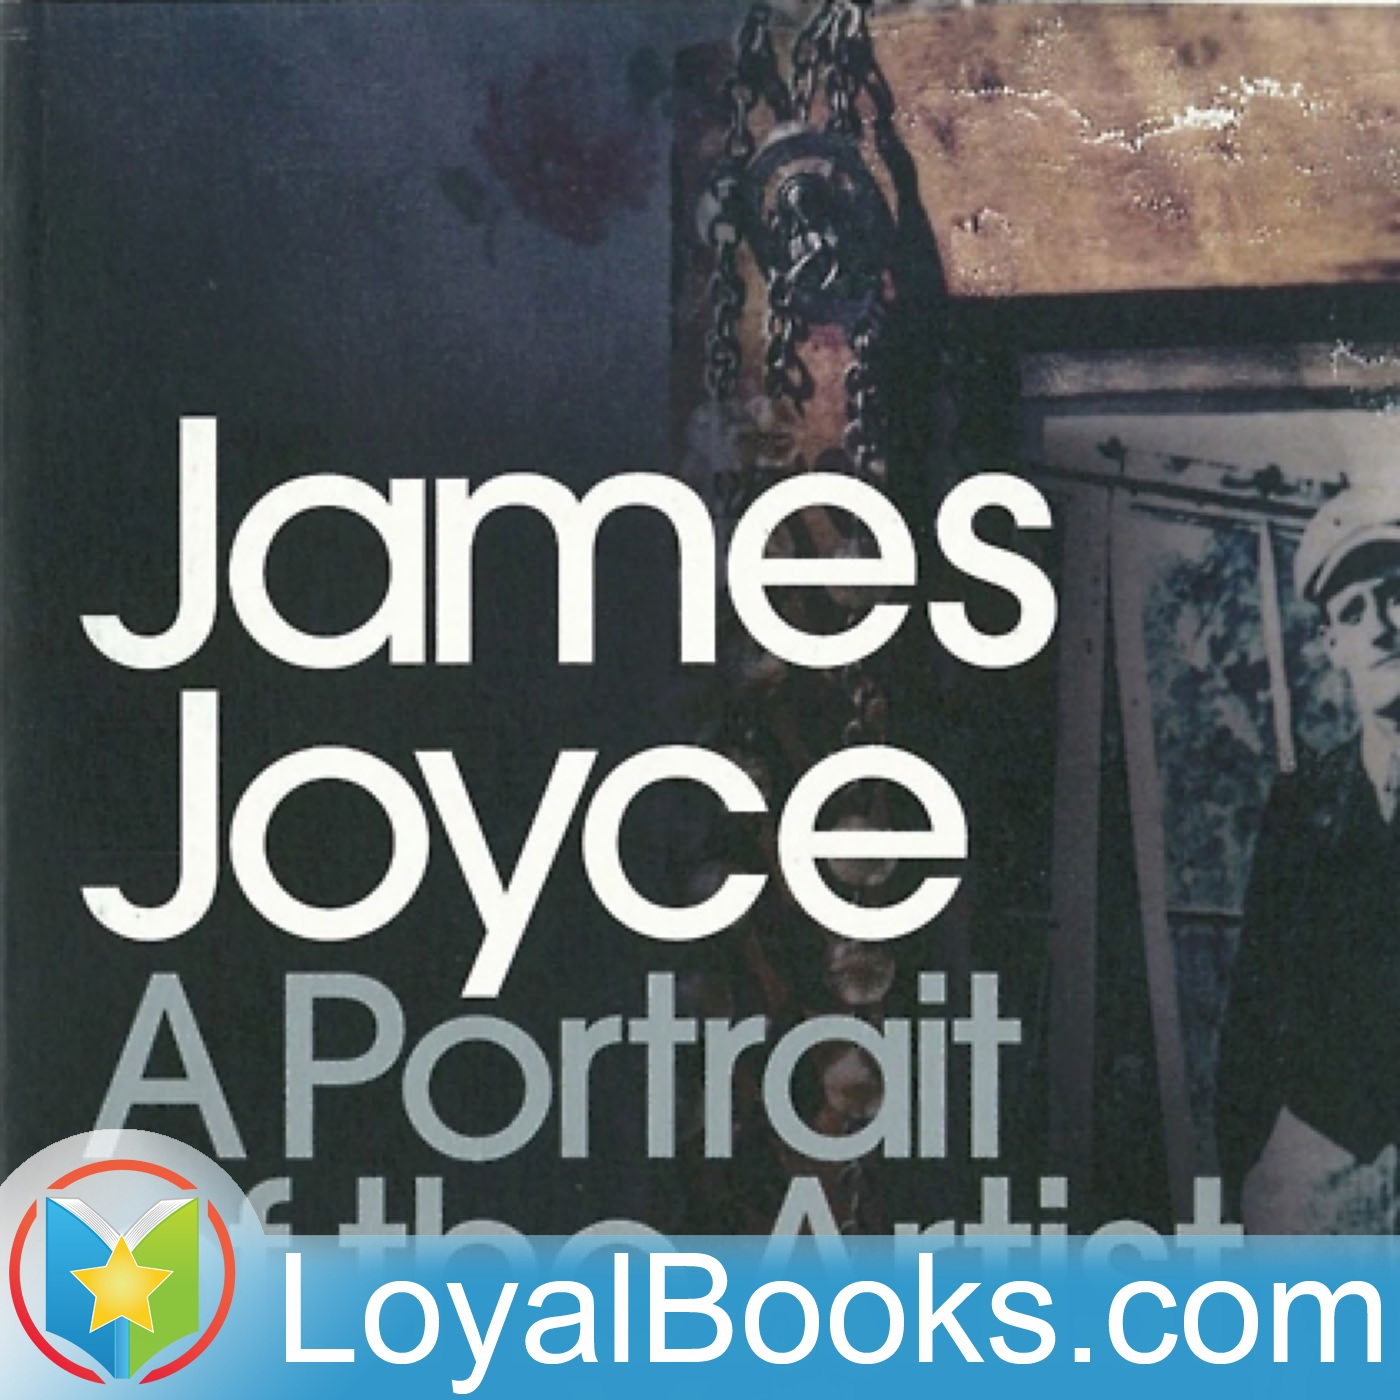 <![CDATA[A Portrait of the Artist as a Young Man by James Joyce]]>